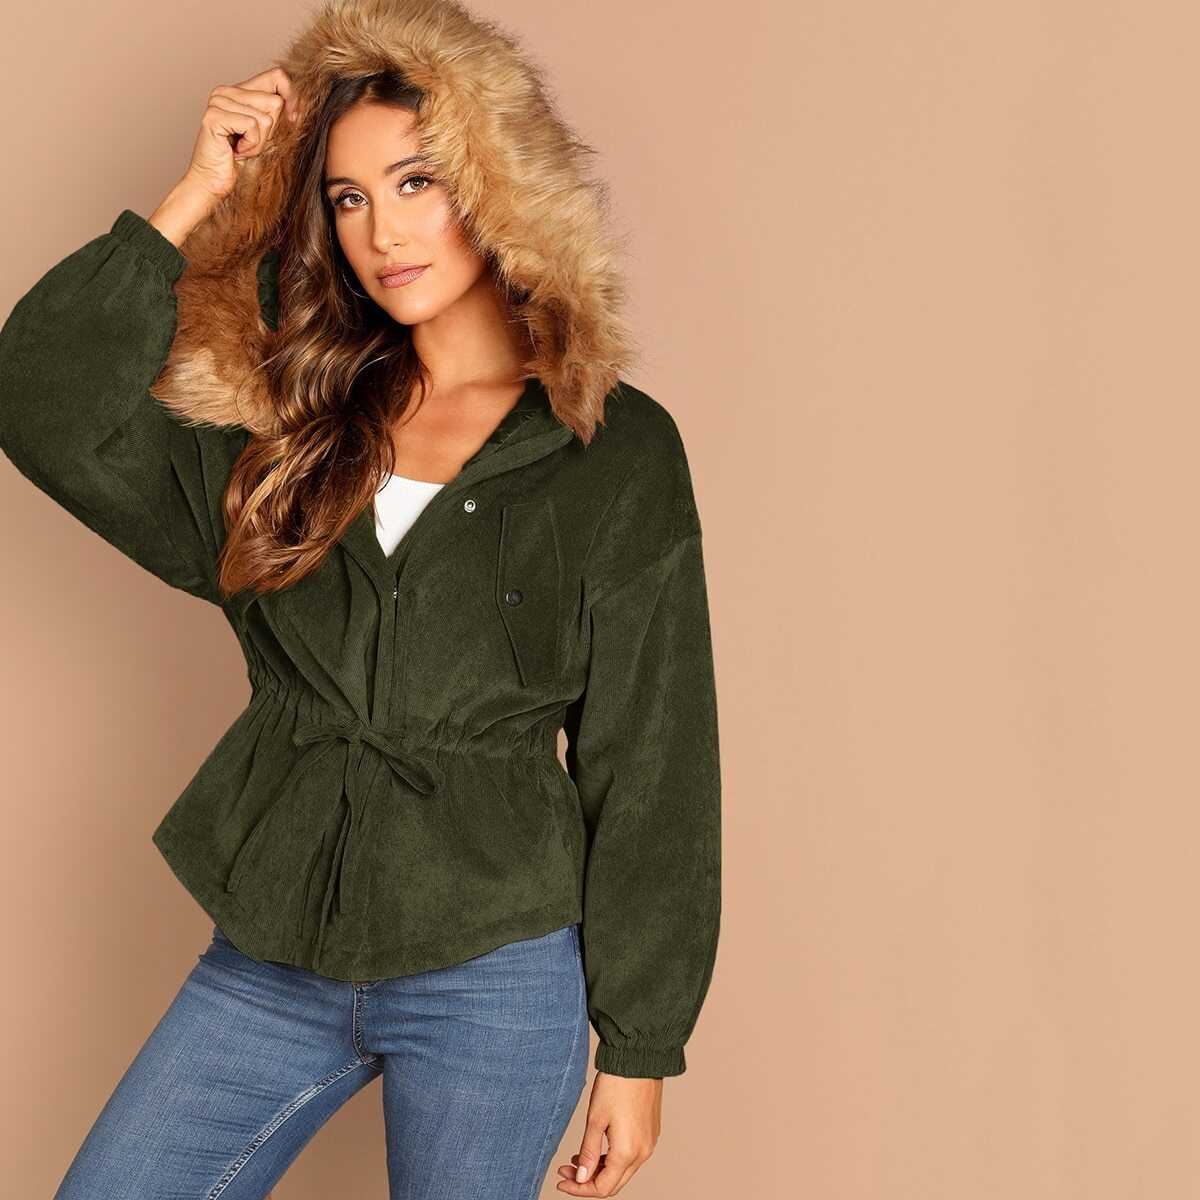 High Low Corduroy Parka Coat With Faux Fur Hoodie in Army Green by ROMWE on GOOFASH